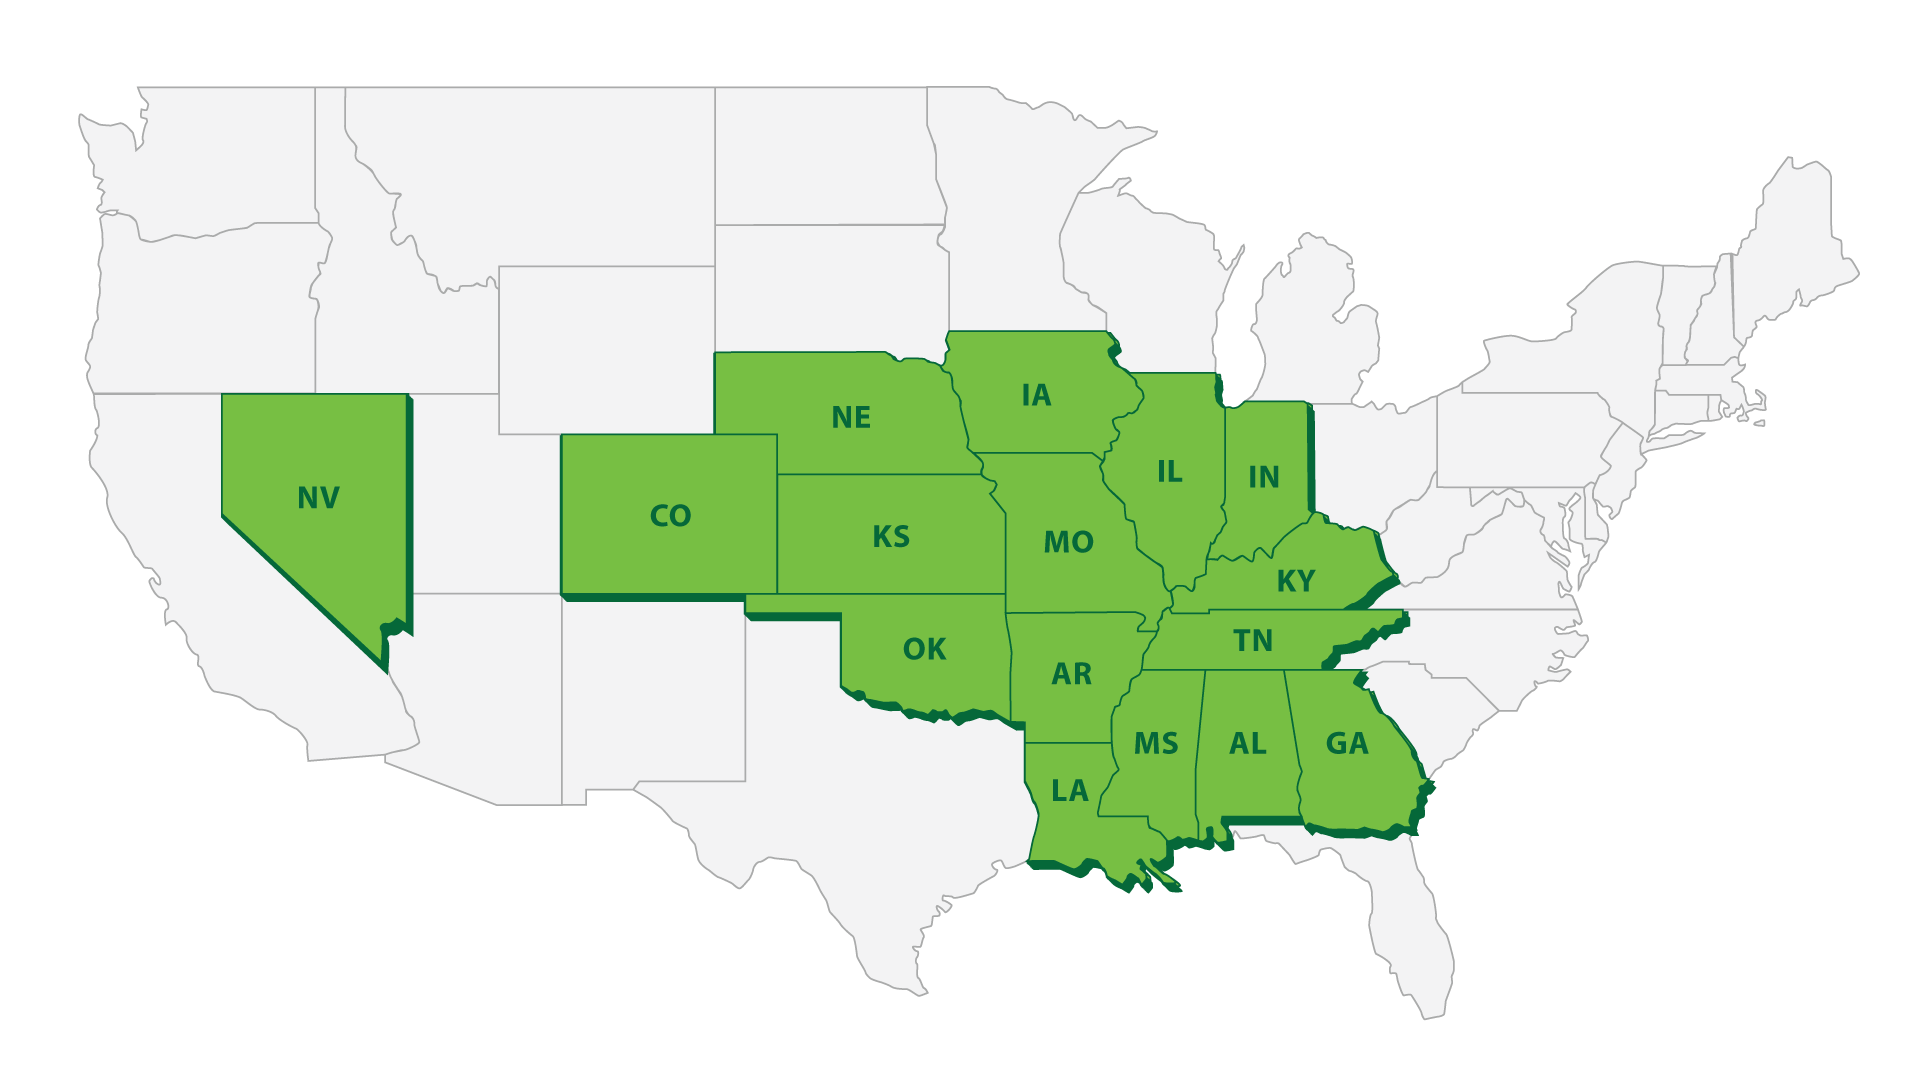 Map of US States